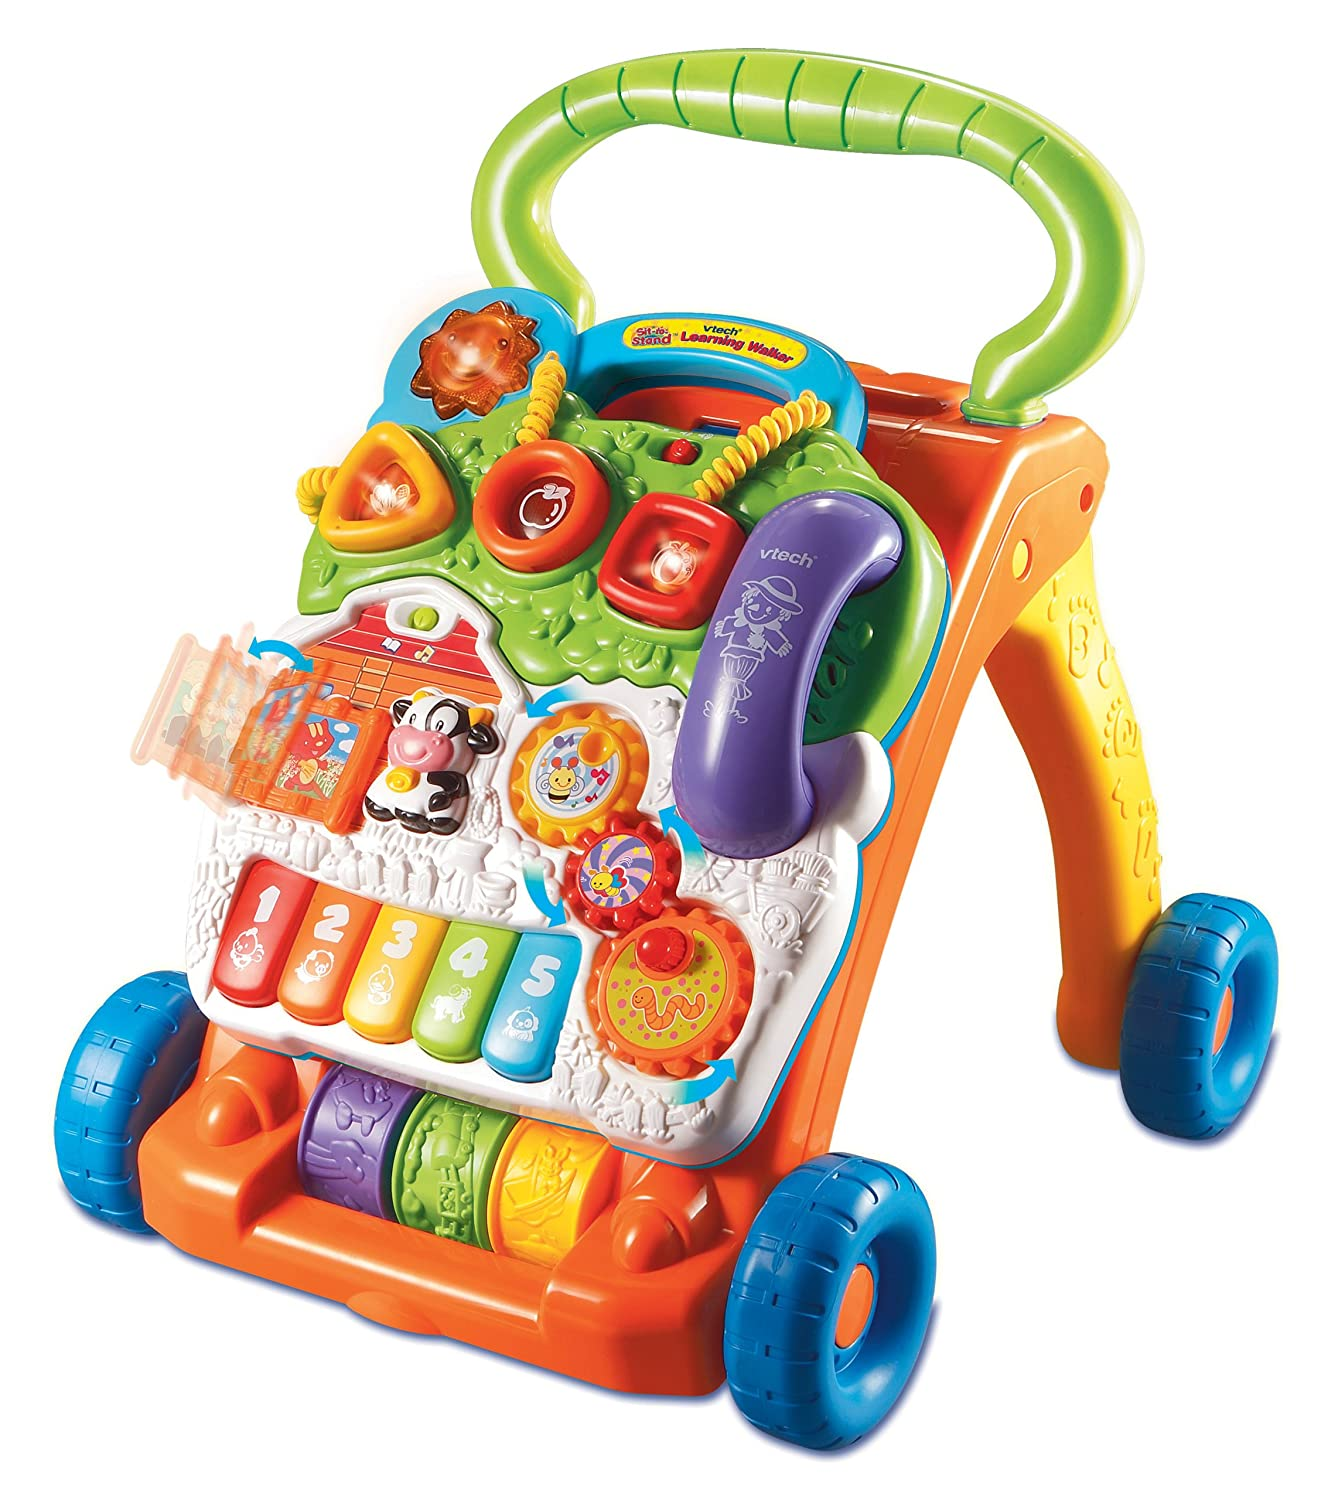 VTech – Sit-to-Stand Learning Walker $19.99